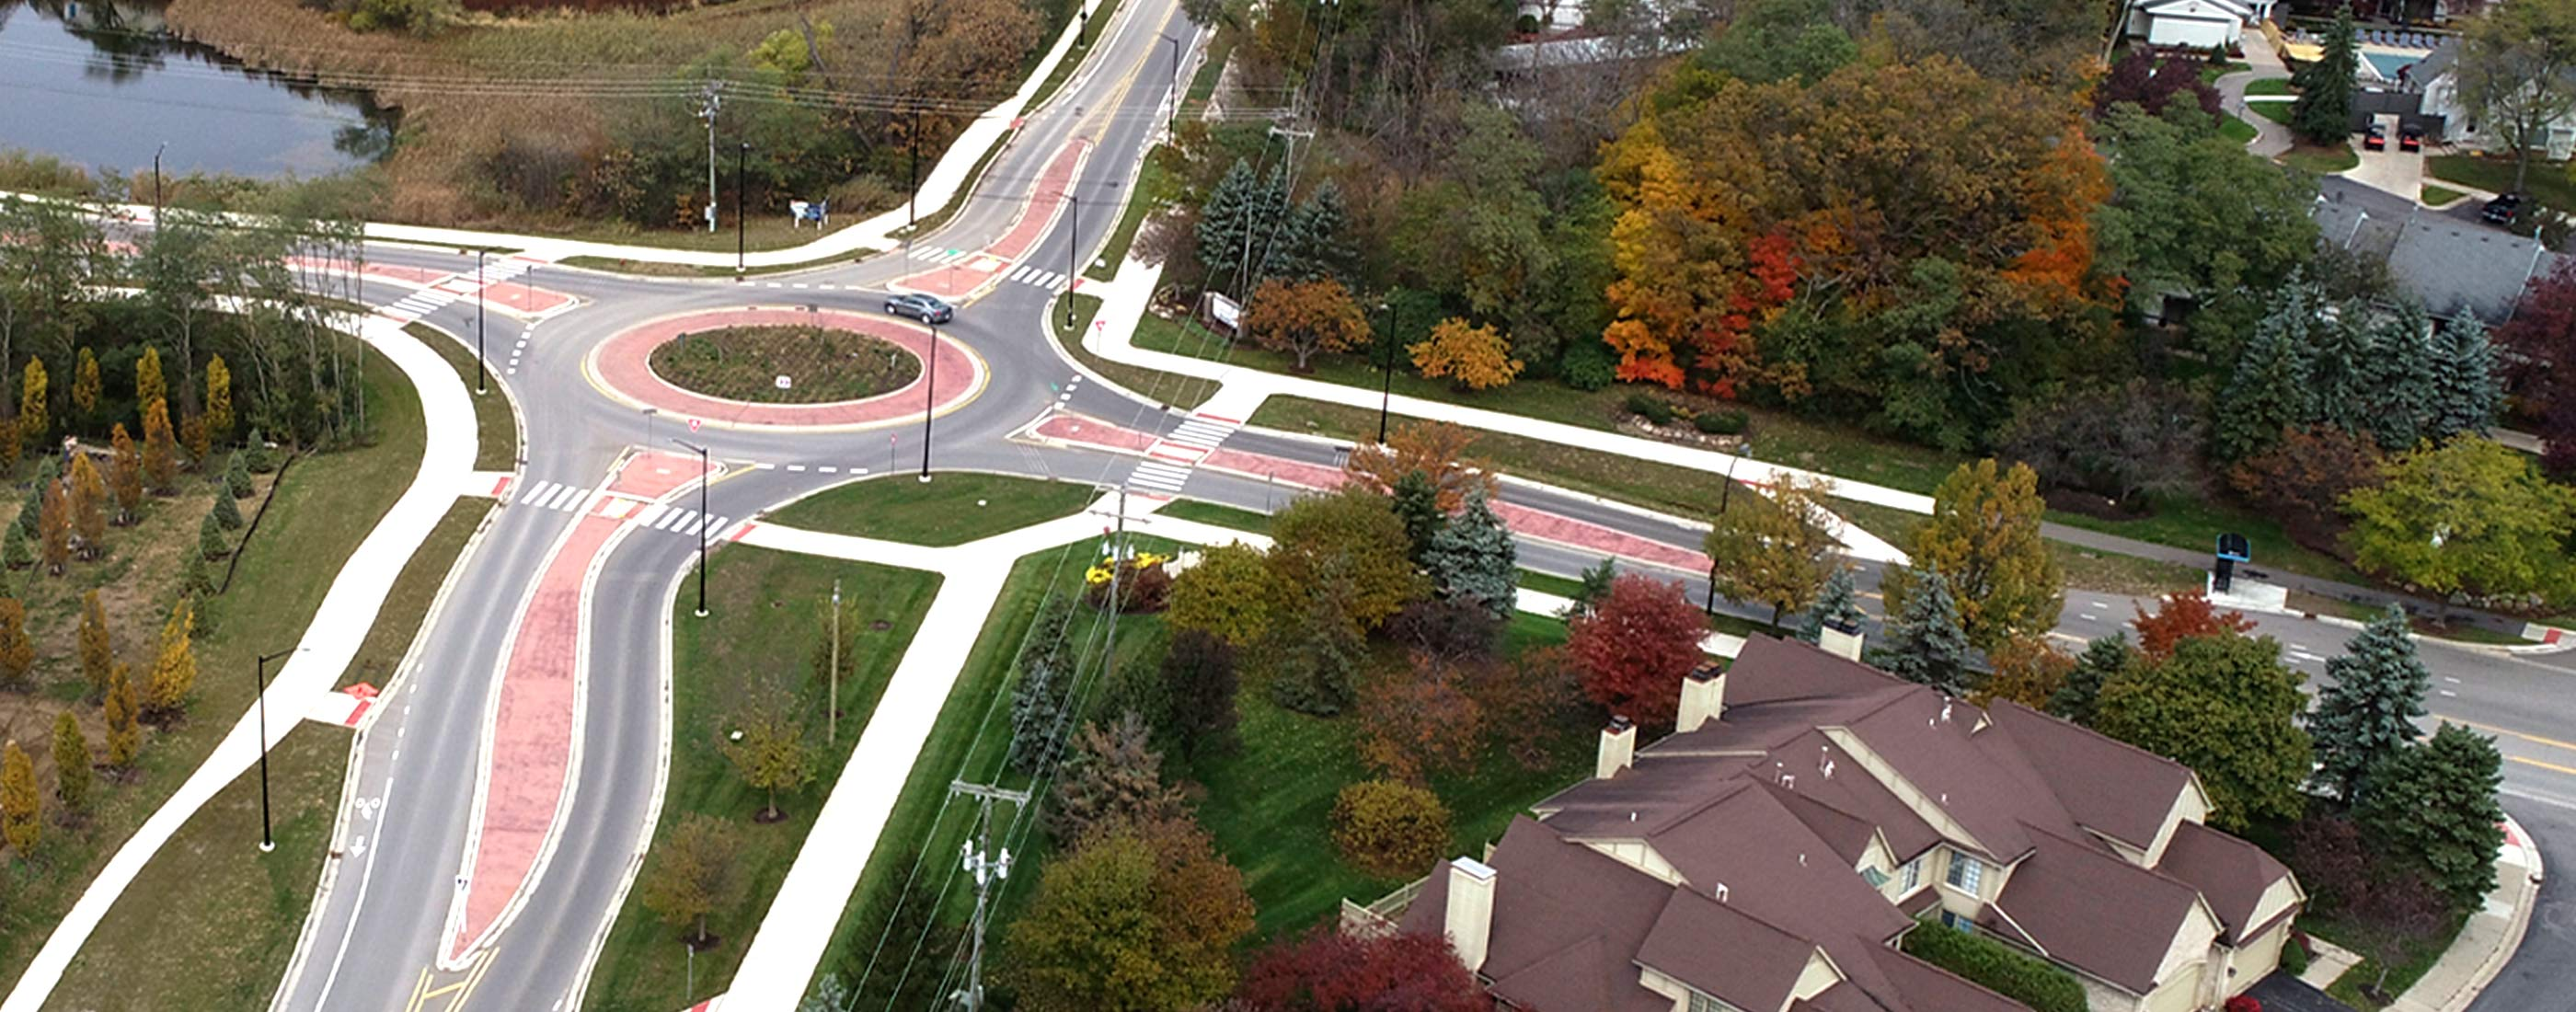 OHM Advisors completed a roundabout design at the highly-traveled intersections of Nixon, Green and Dhu Varren roads.